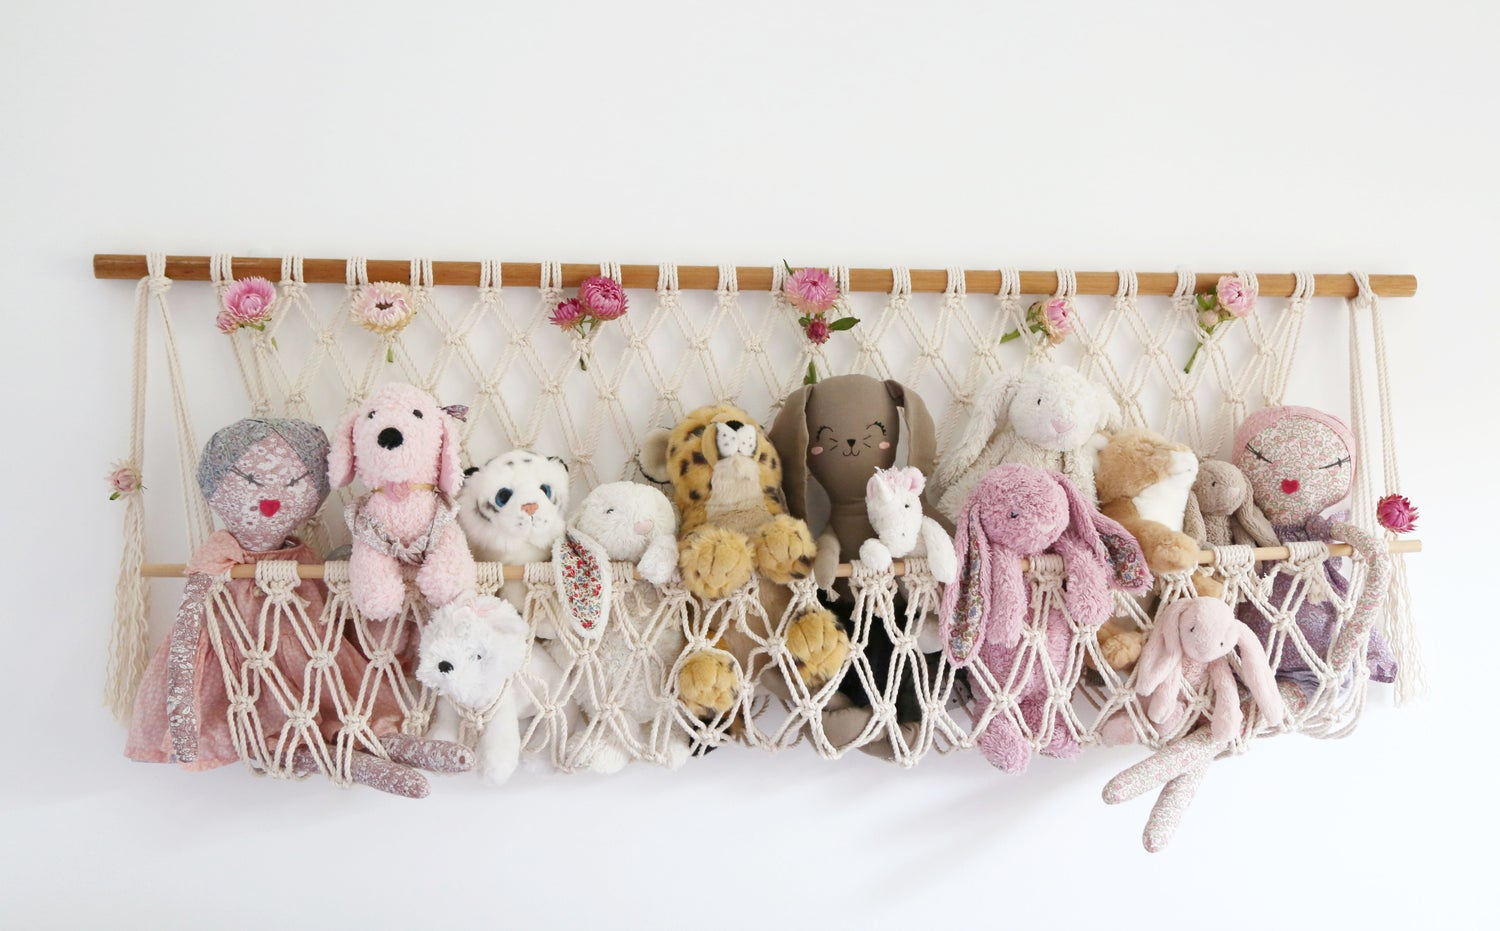 Image of Macrame Stuffed Toy Hanger